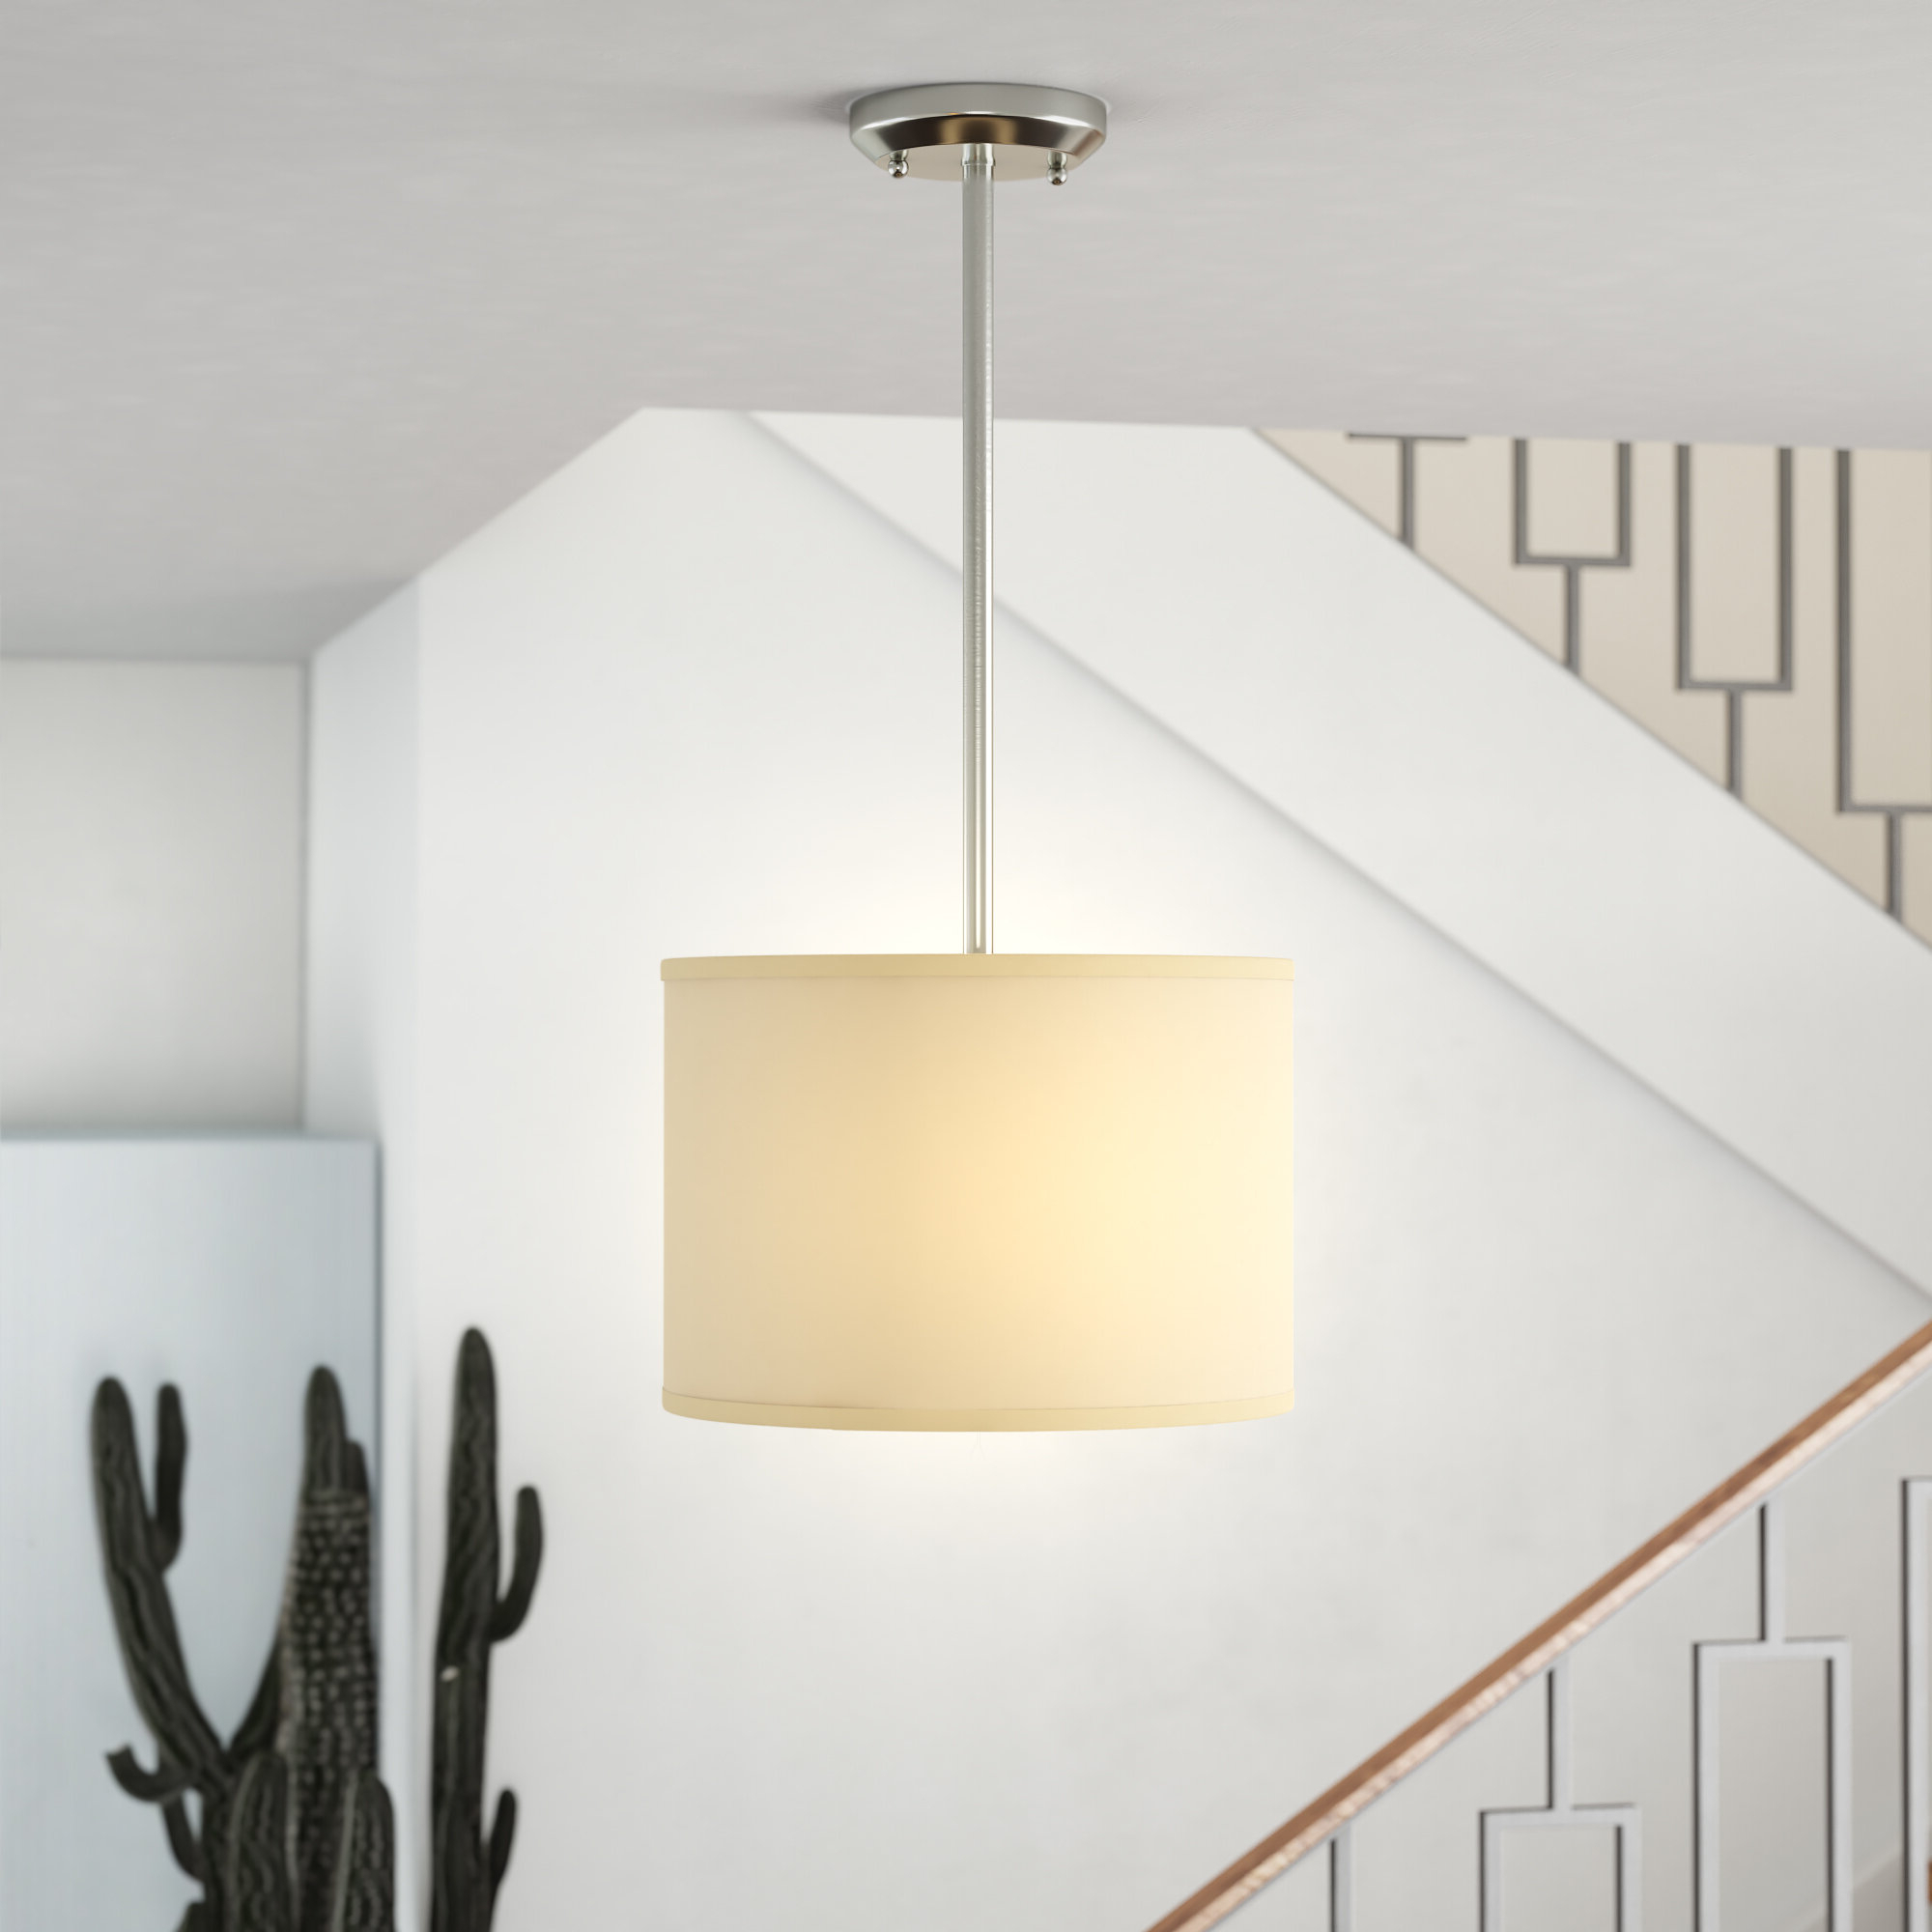 Trendy Kasey 1 Light Single Drum Pendant In Kasey 3 Light Single Drum Pendants (View 24 of 25)